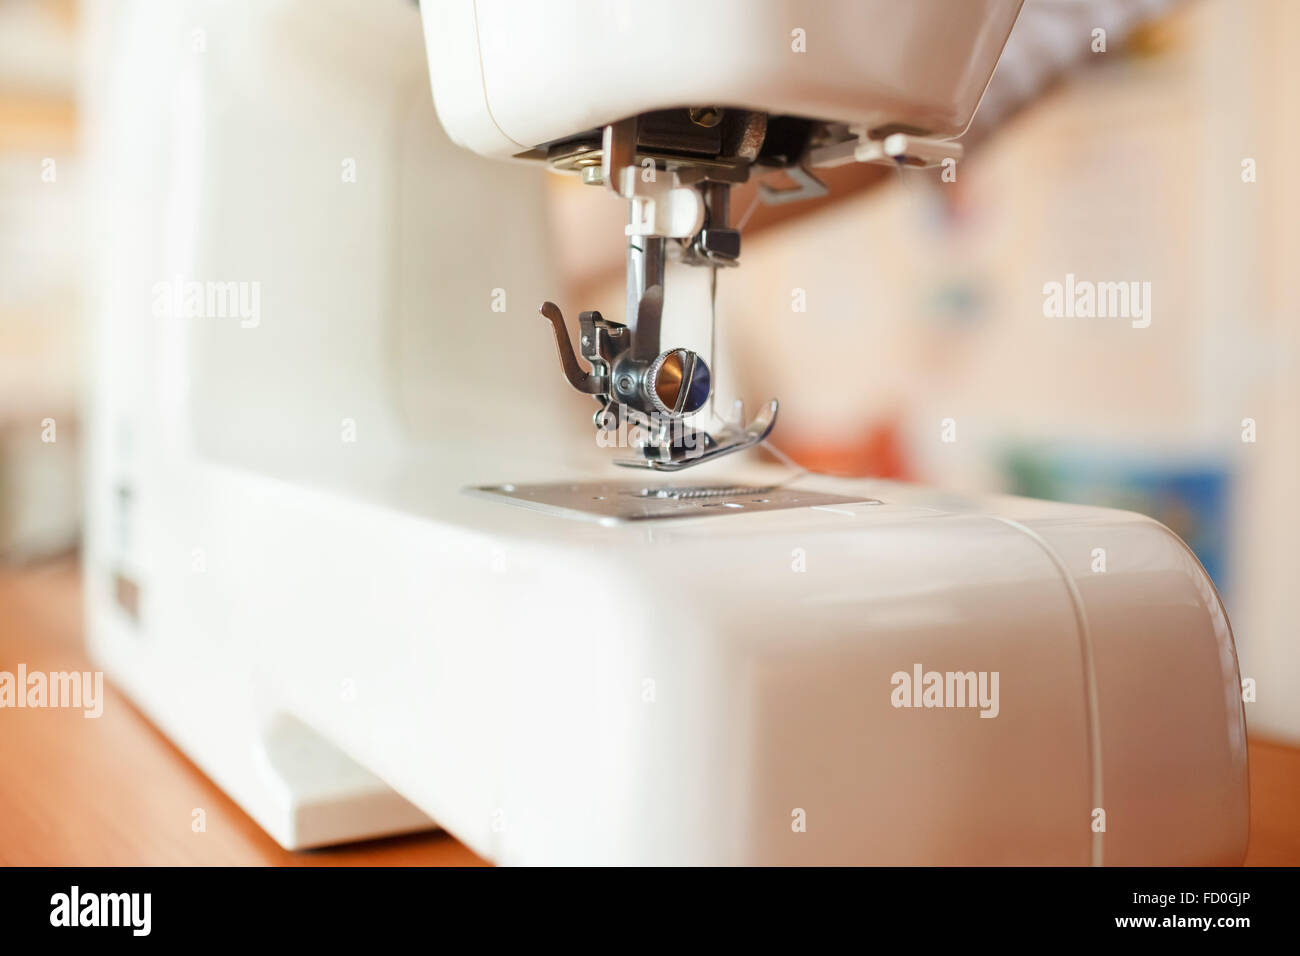 Sewing machine needle working part, detail and accessories, modern white, perspective. - Stock Image